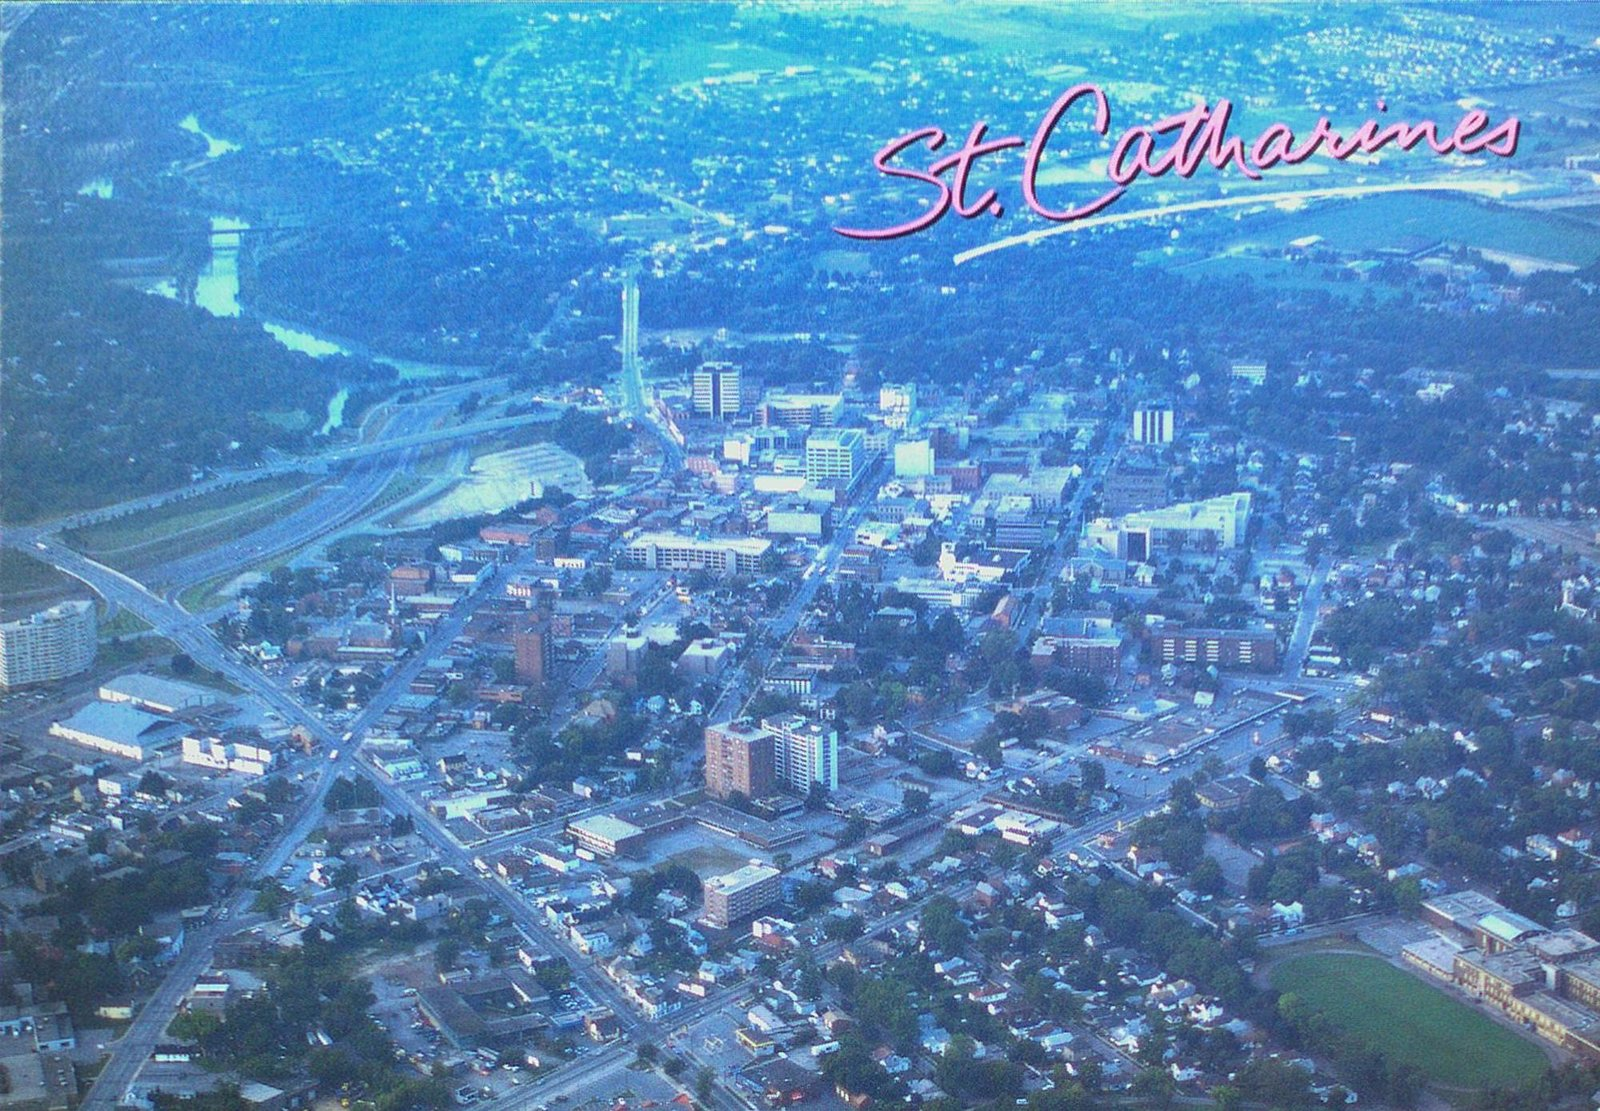 An Aerial View of Downtown St. Catharines